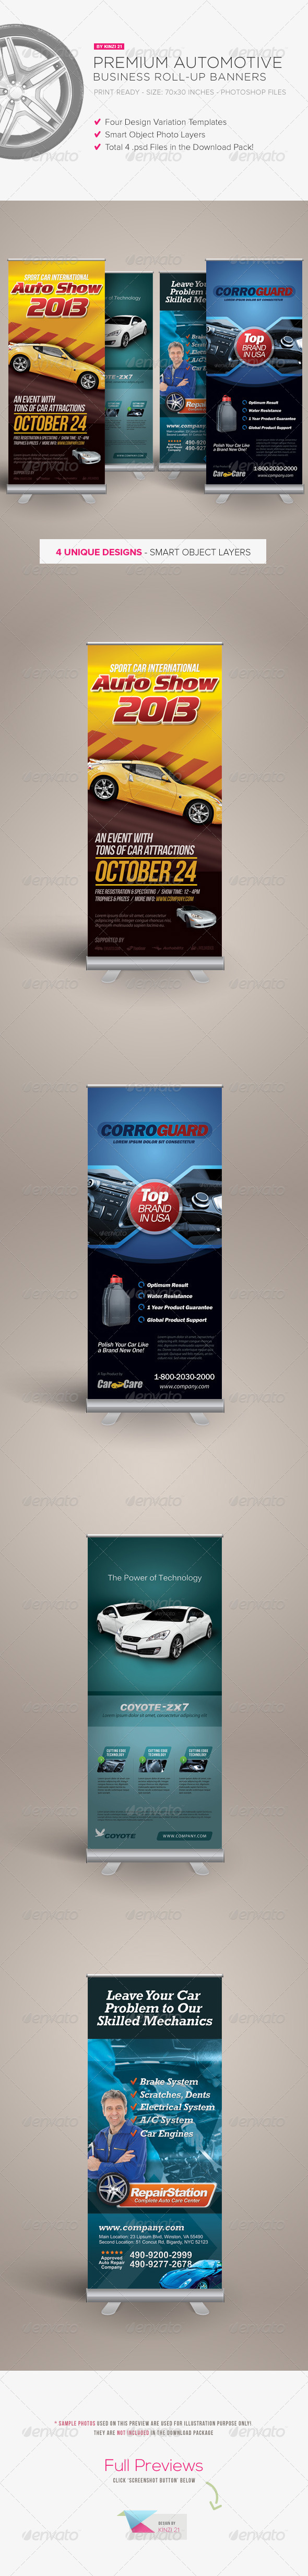 Premium Automotive Business Roll-up Banners - Signage Print Templates